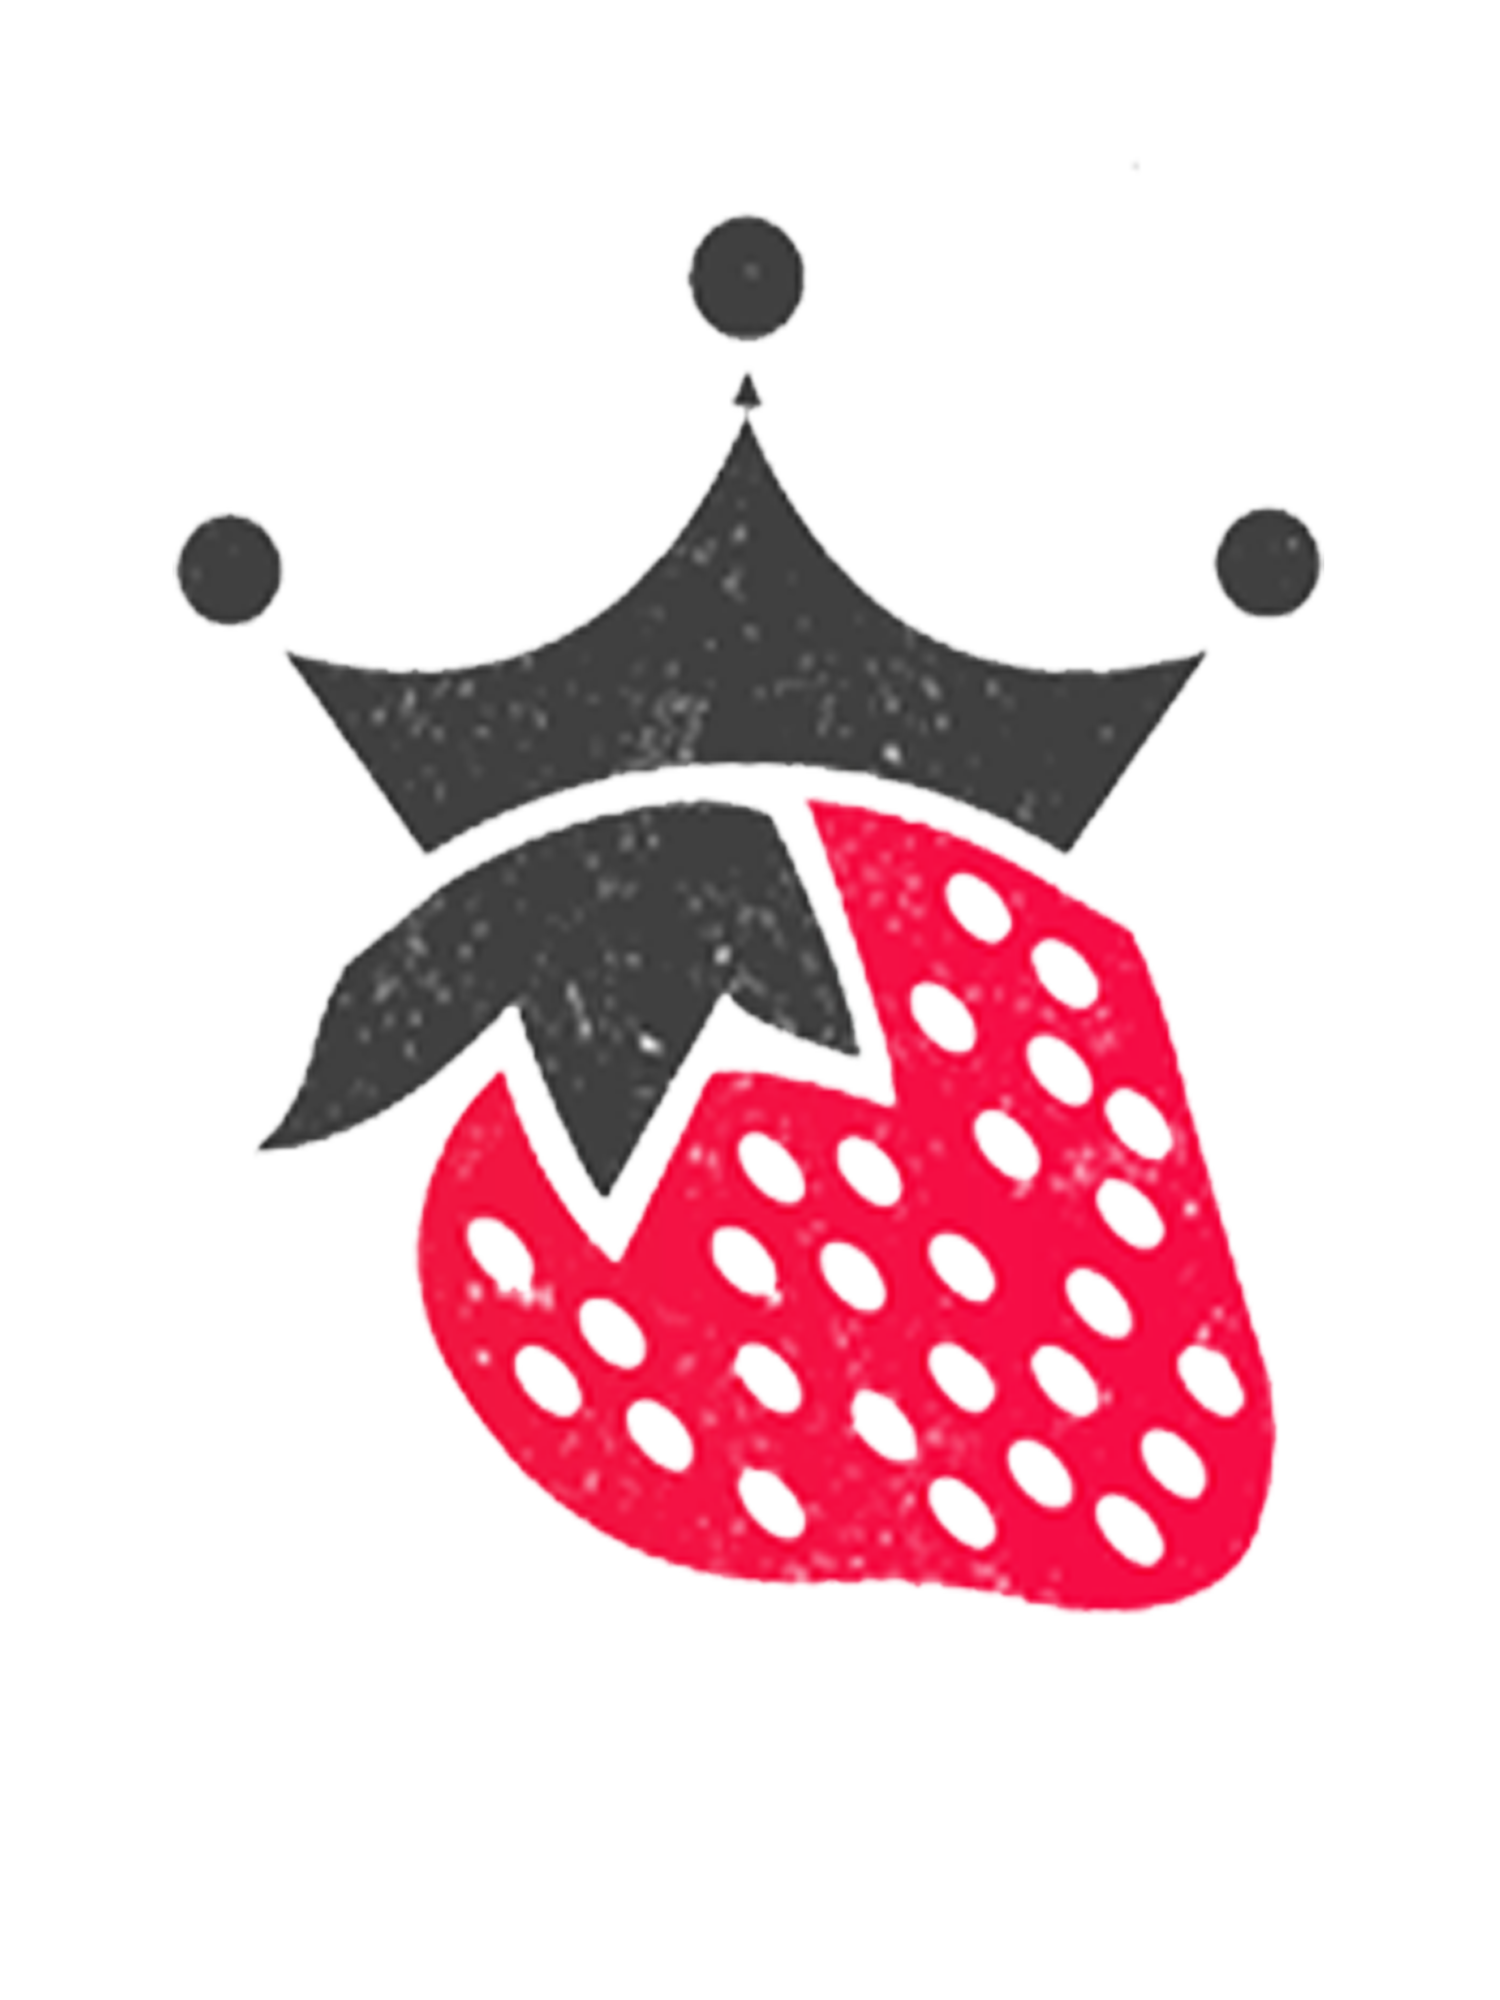 Queen & Berry | Web Design and Branding Experts | Chicago, IL